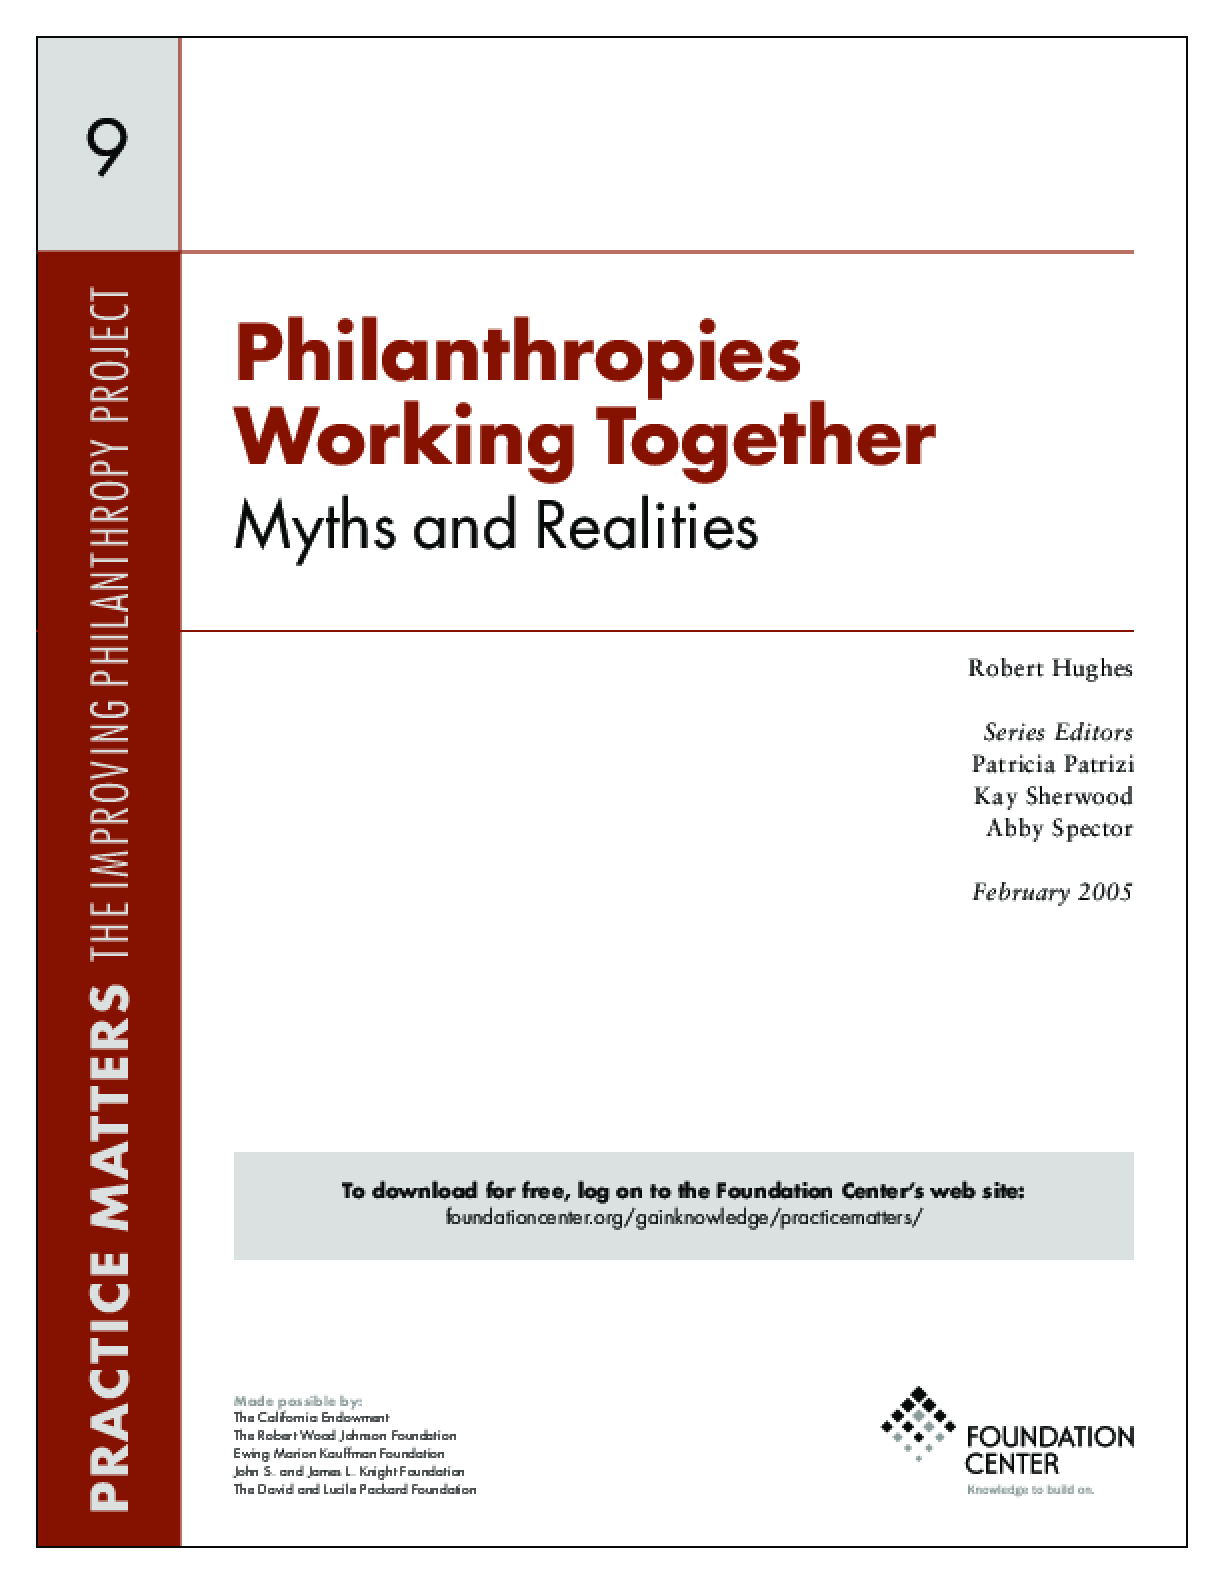 Philanthropies Working Together: Myths and Realities - Executive Summary